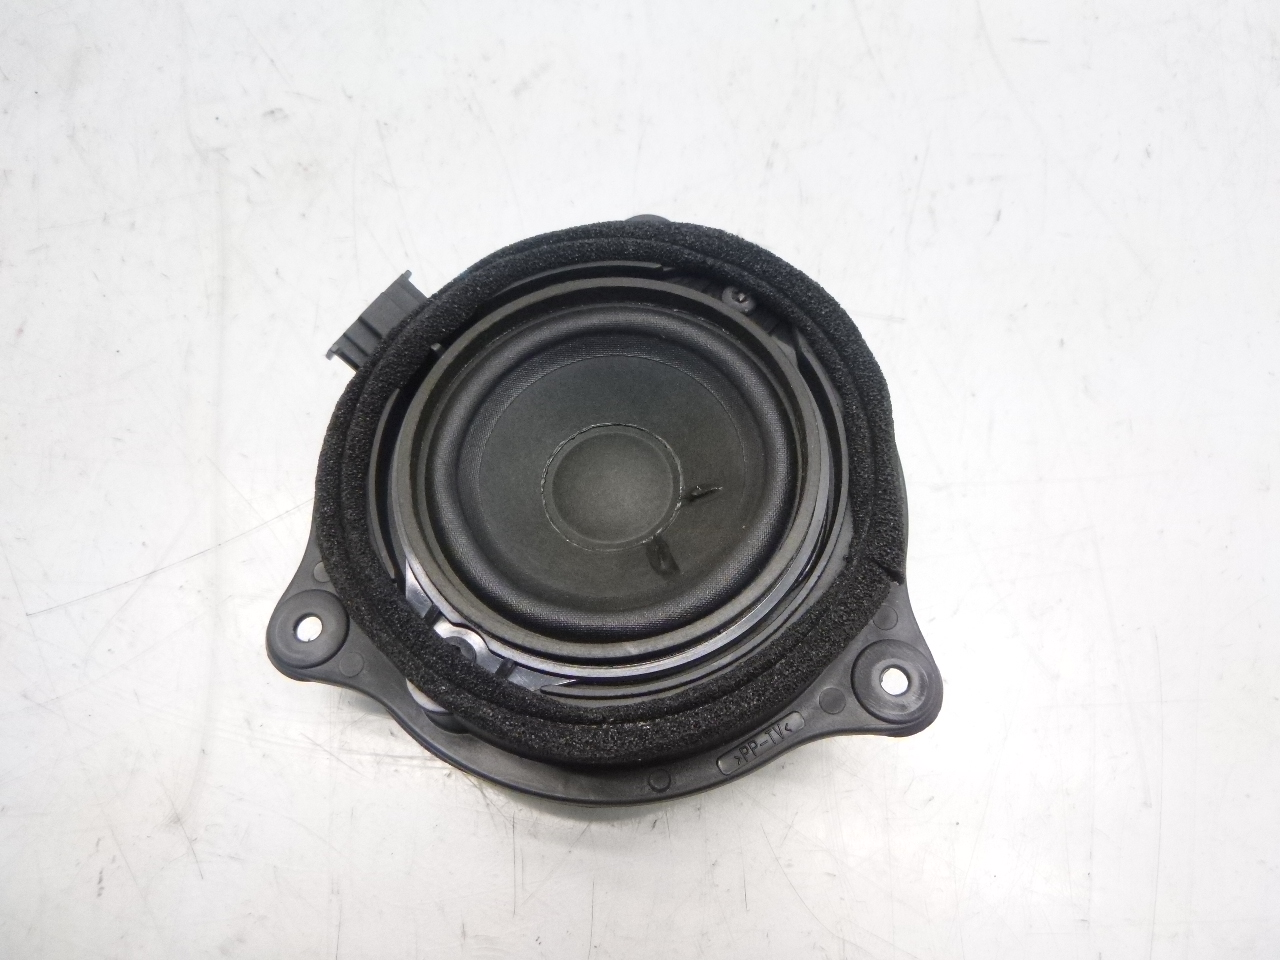 Altoparlanti Audi A6 S6 4F 5,2 BXA IT237476